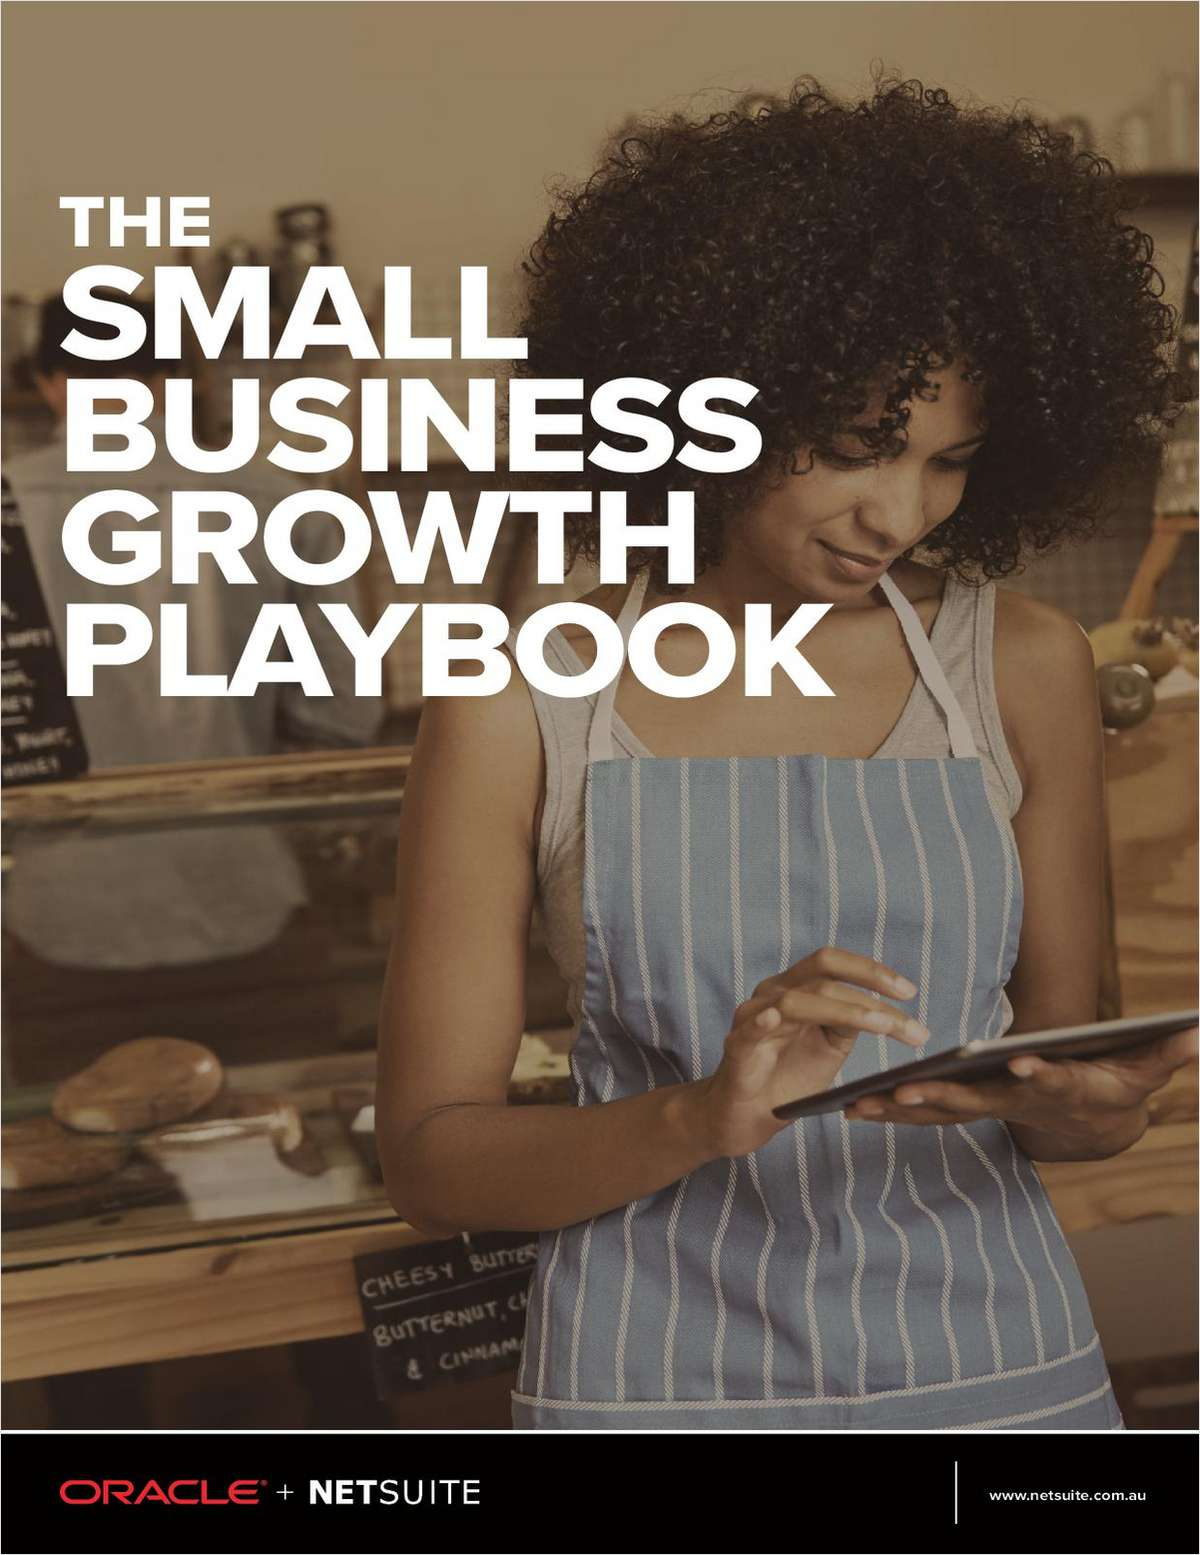 The Australia Small Business Growth Playbook